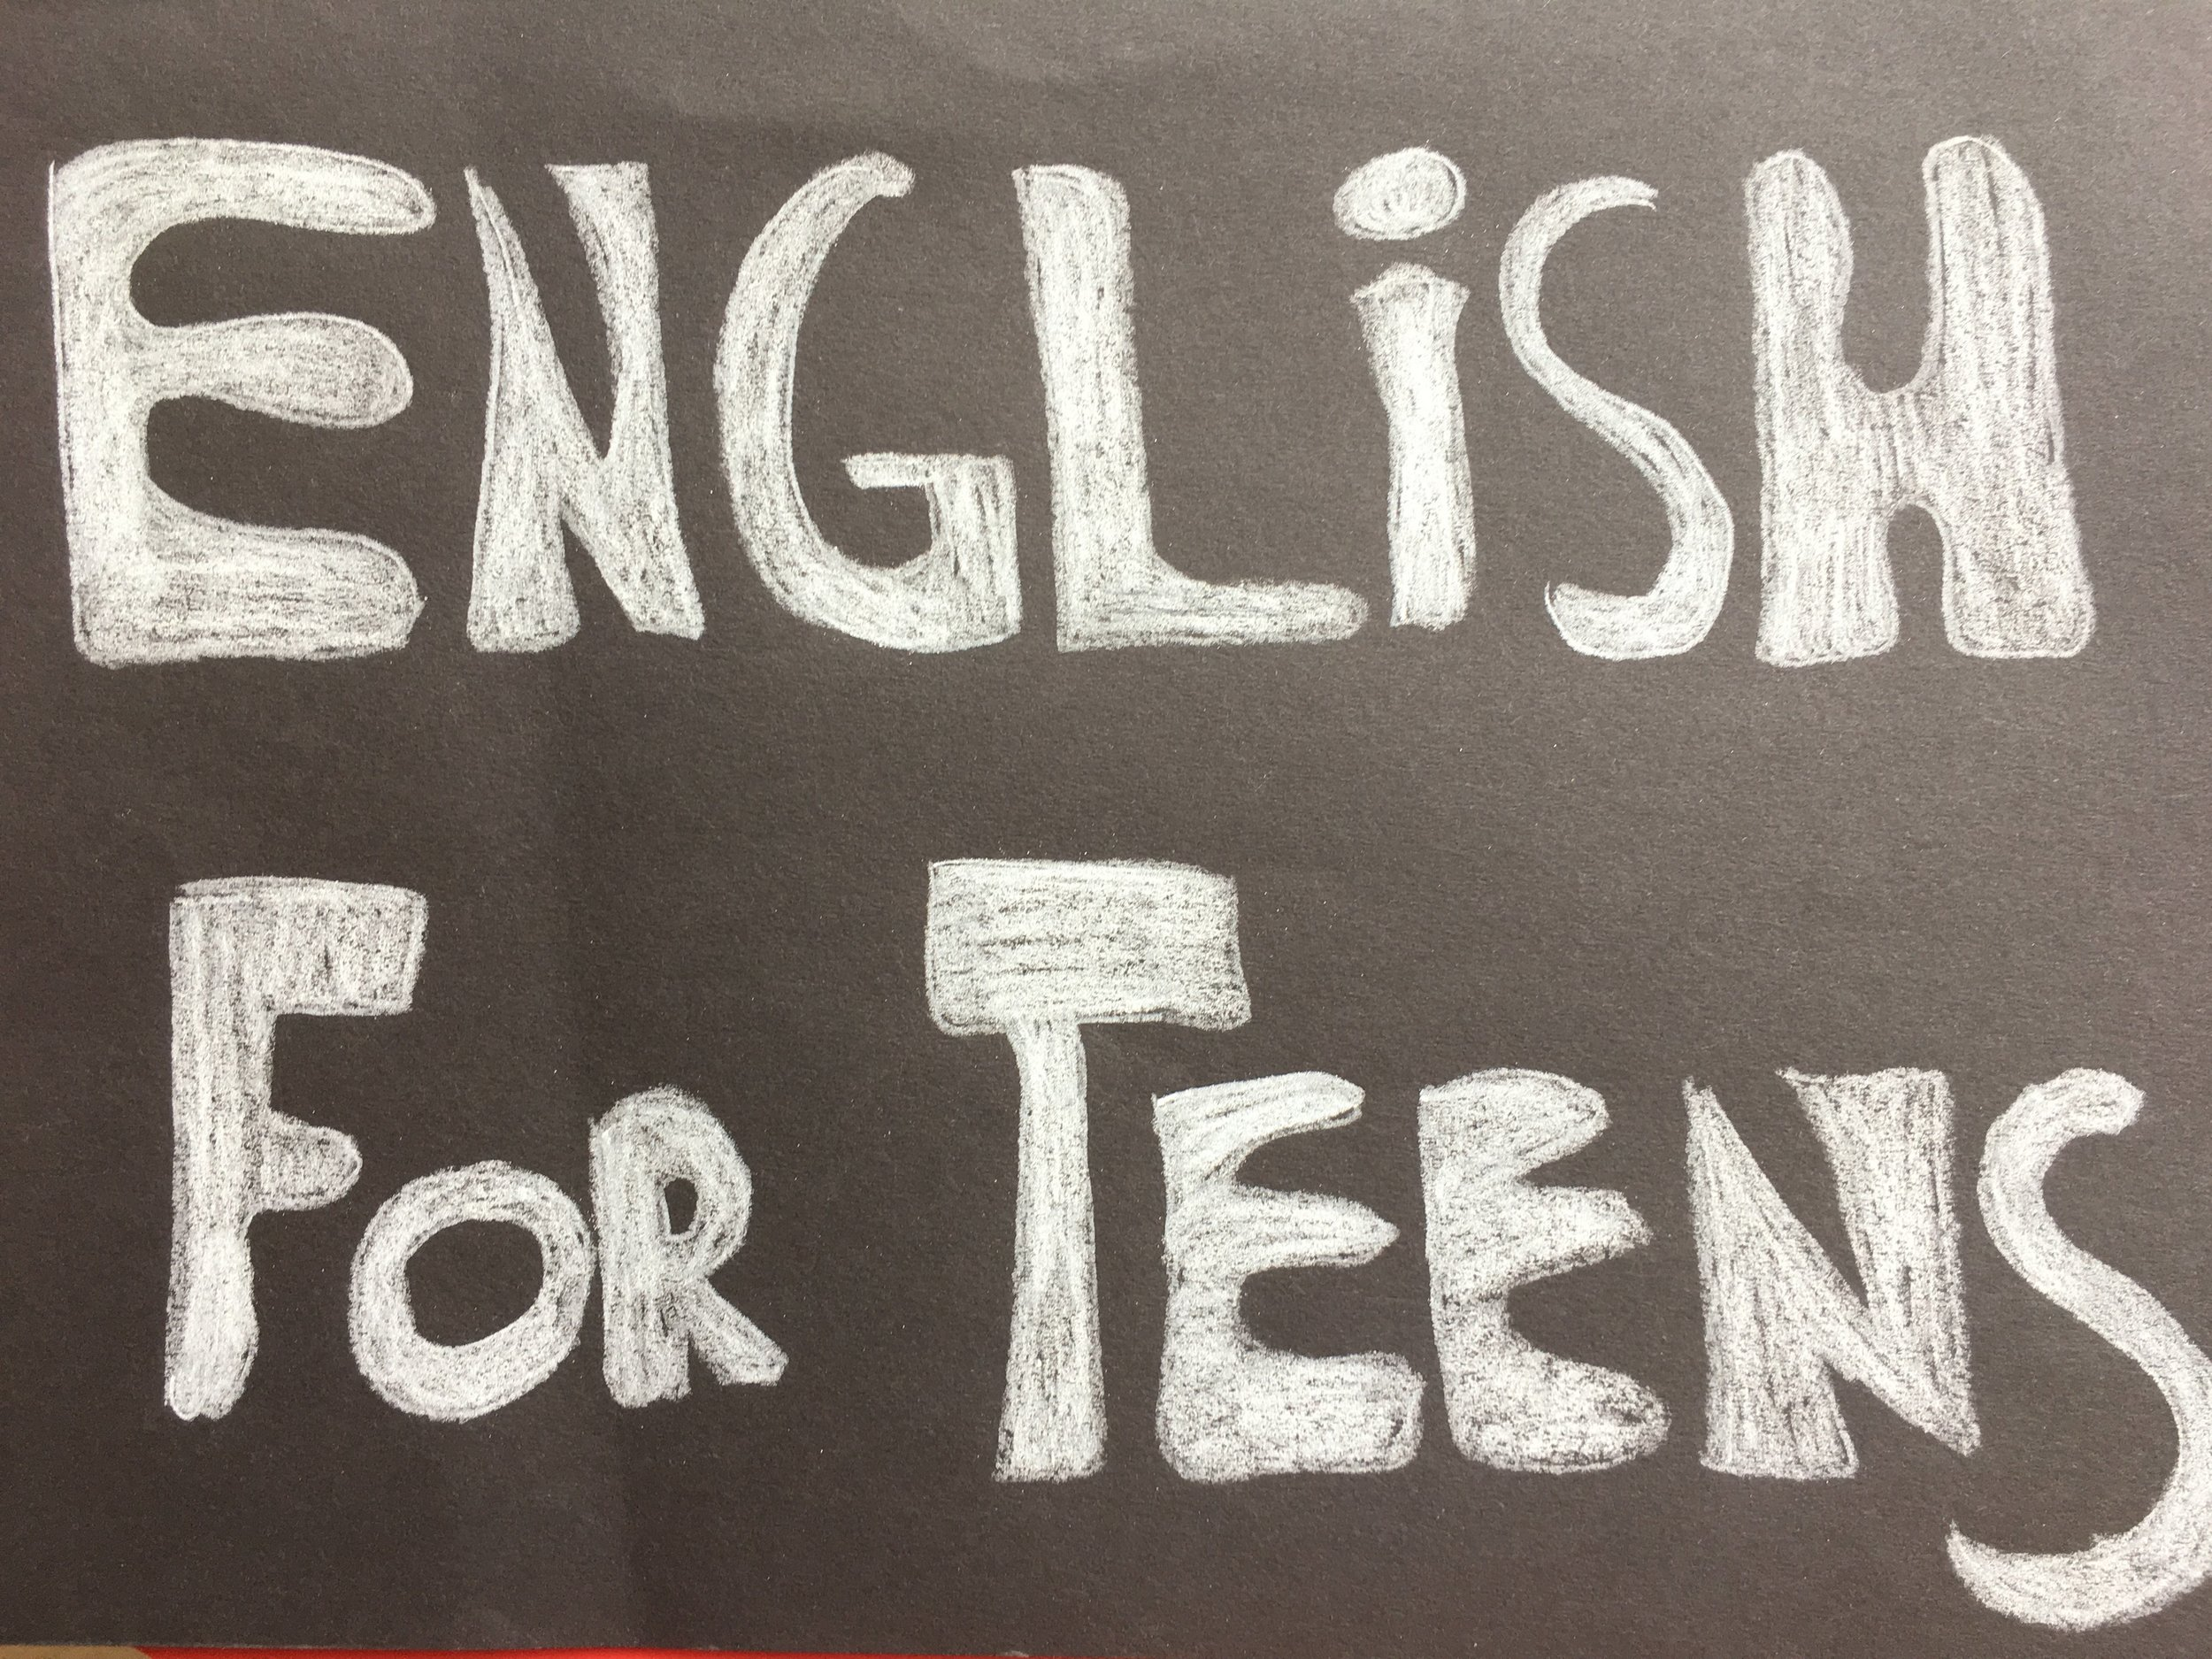 English for Teens